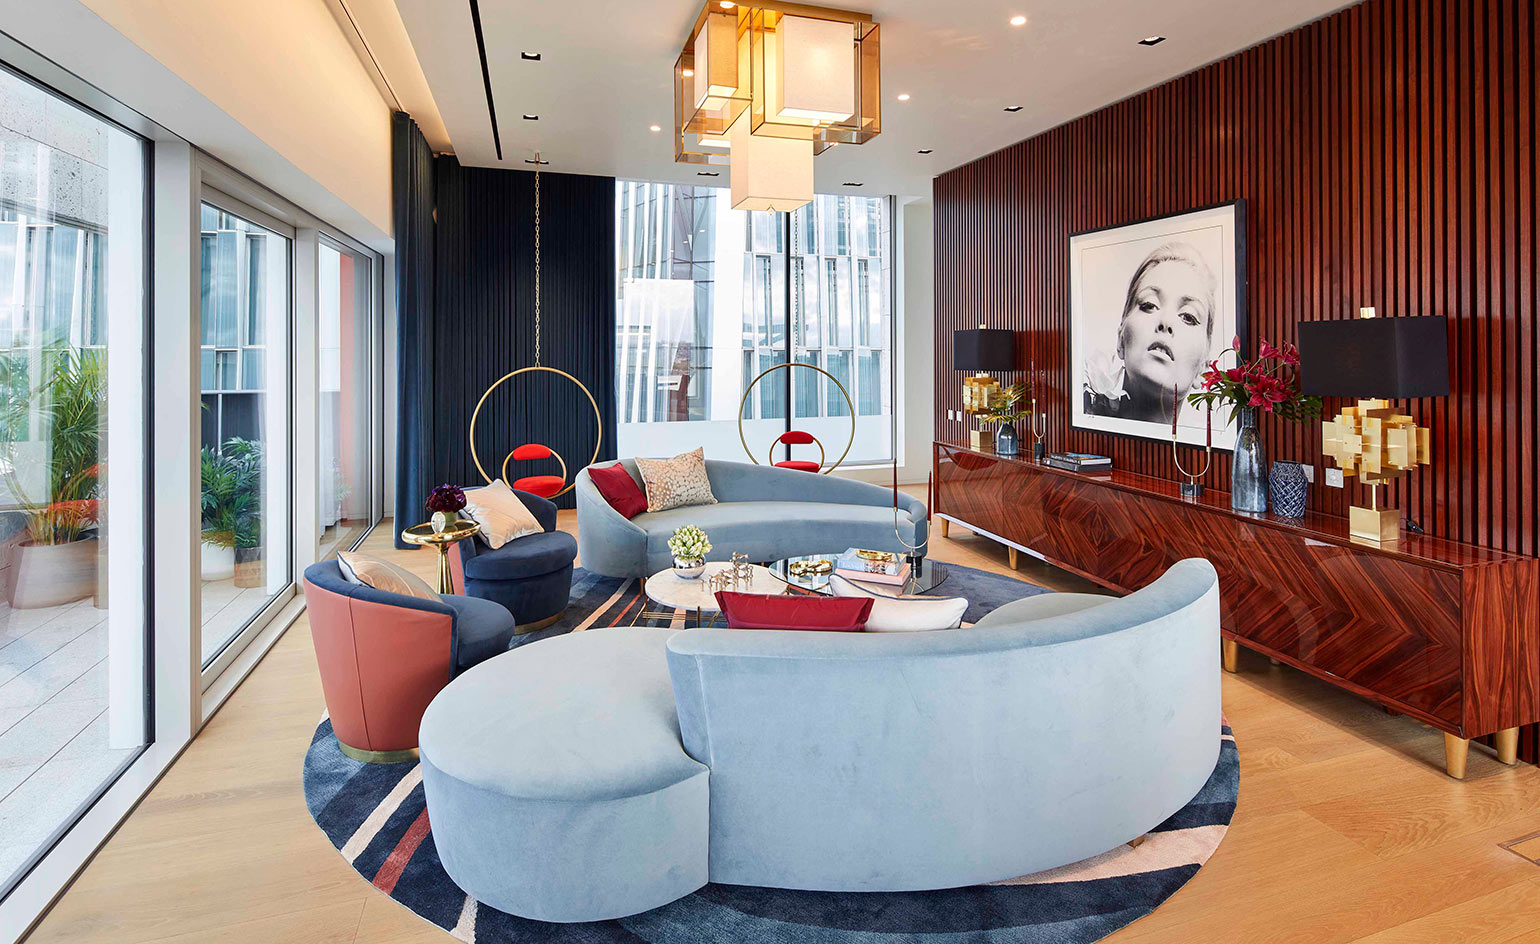 While drawing on the cultural heritage of london architecture the building holds all the modern amenities of any luxury residential building including a